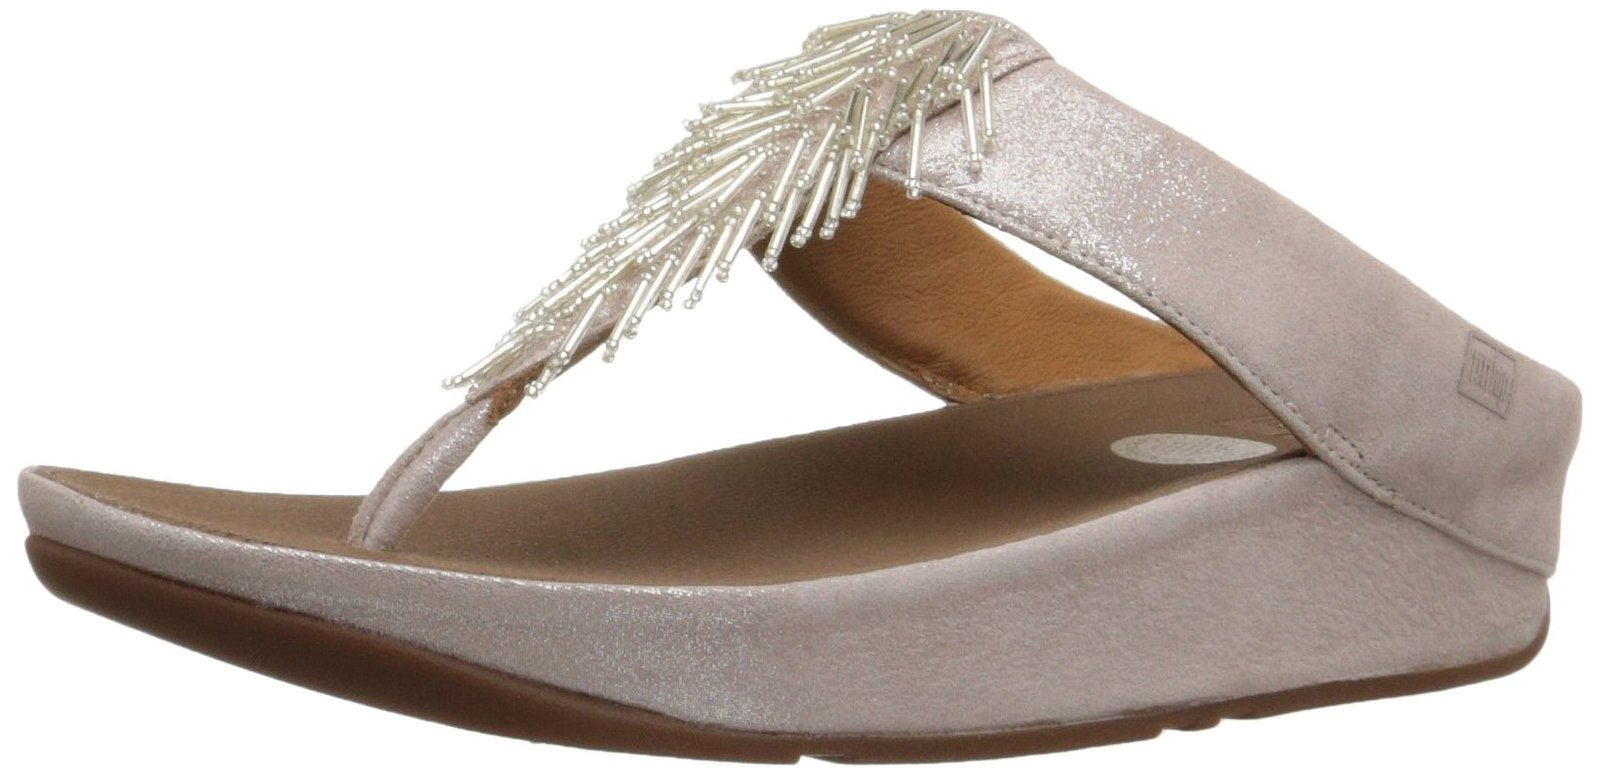 FitFlop Women's Cha Cha Flip Flop, Silver, 10 M US